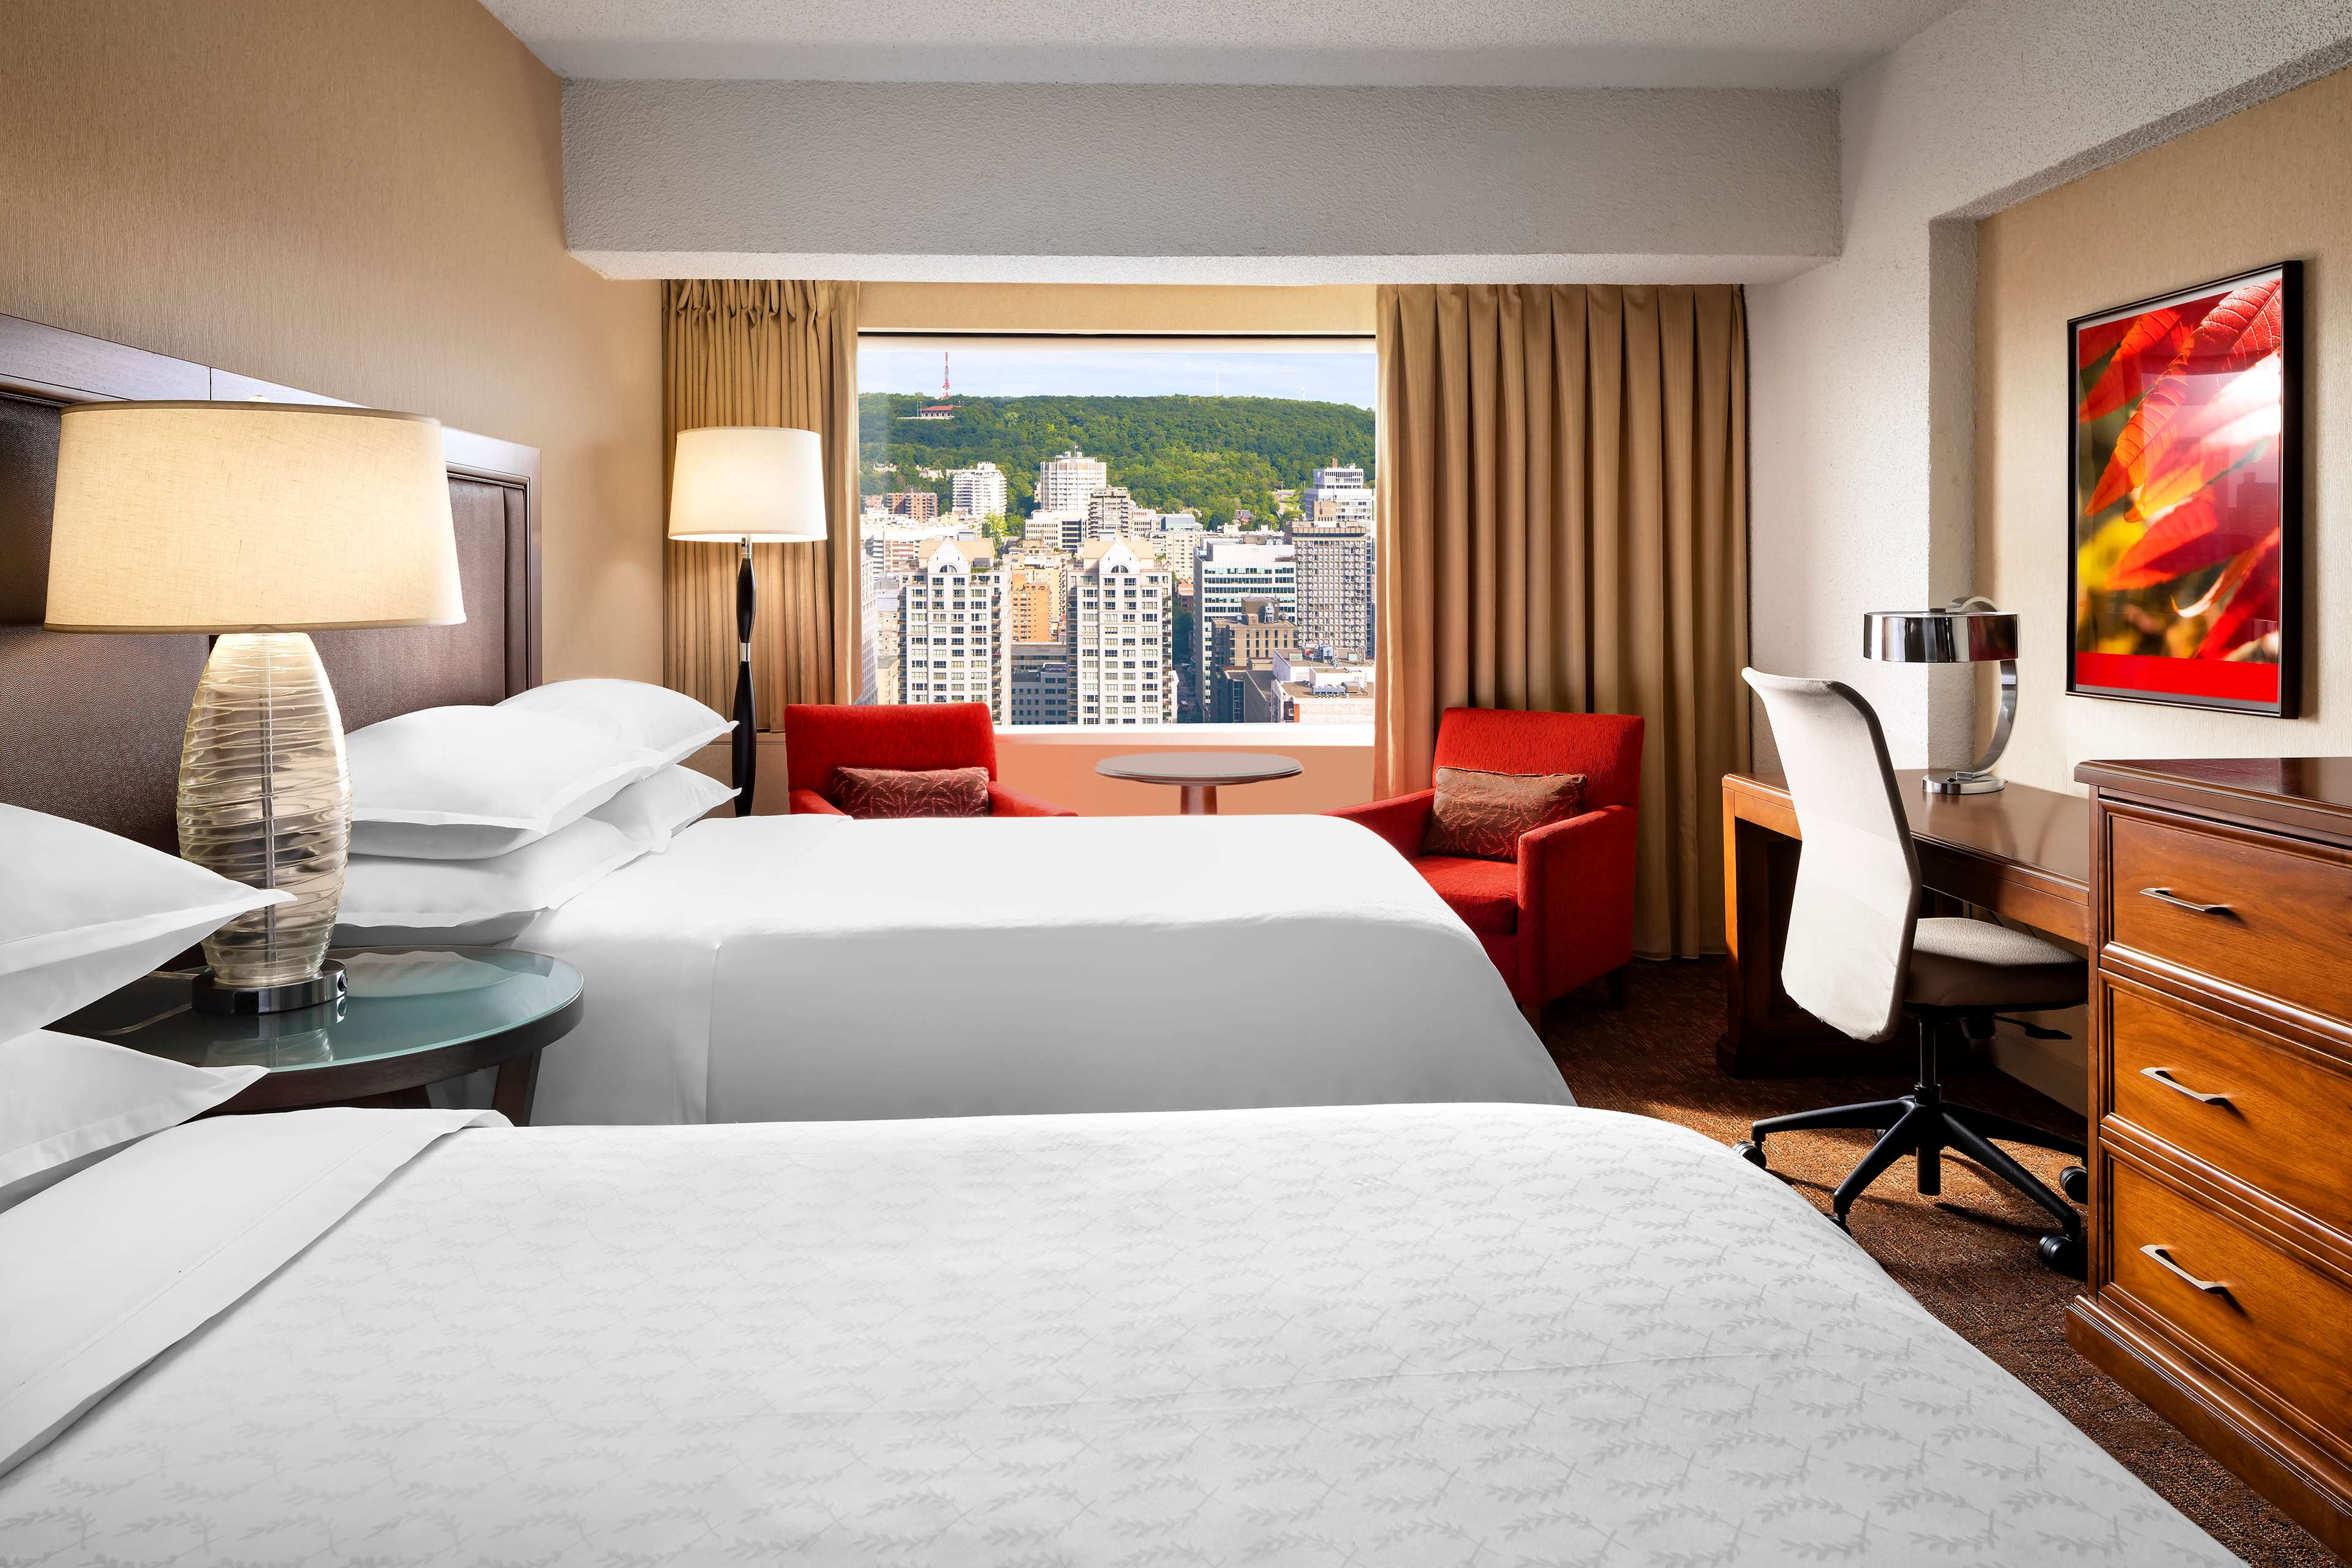 Le Centre Sheraton Montreal Hotel à Montreal: Chambre traditionnelle, 2 lits doubles Traditional Guestroom, 2 Double Beds